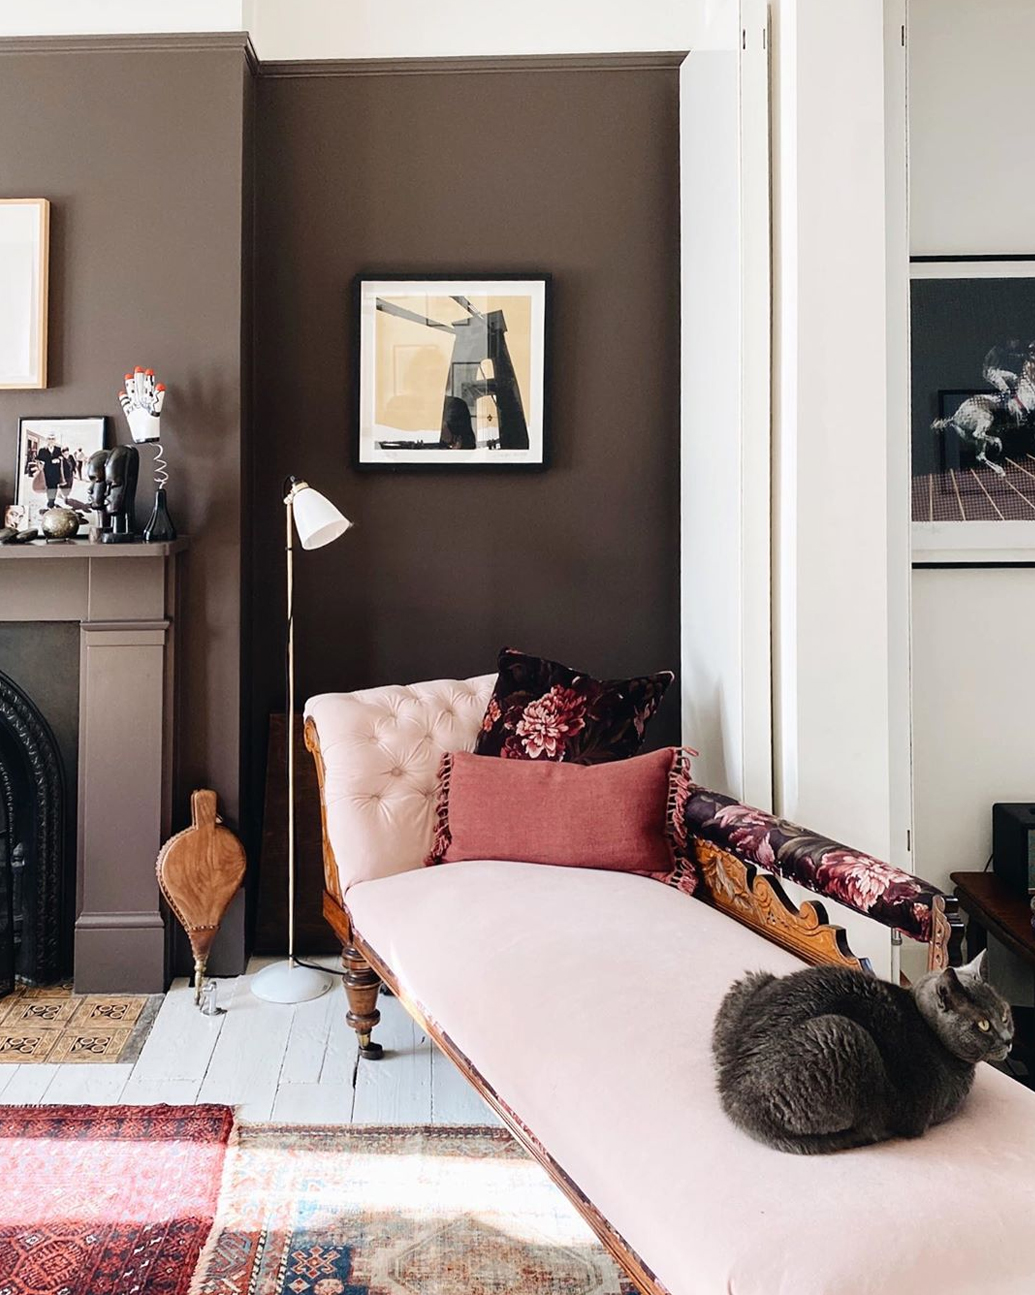 Interior shot from @madaboutthehouse featuring dark moody walls and pink soft furnishings..